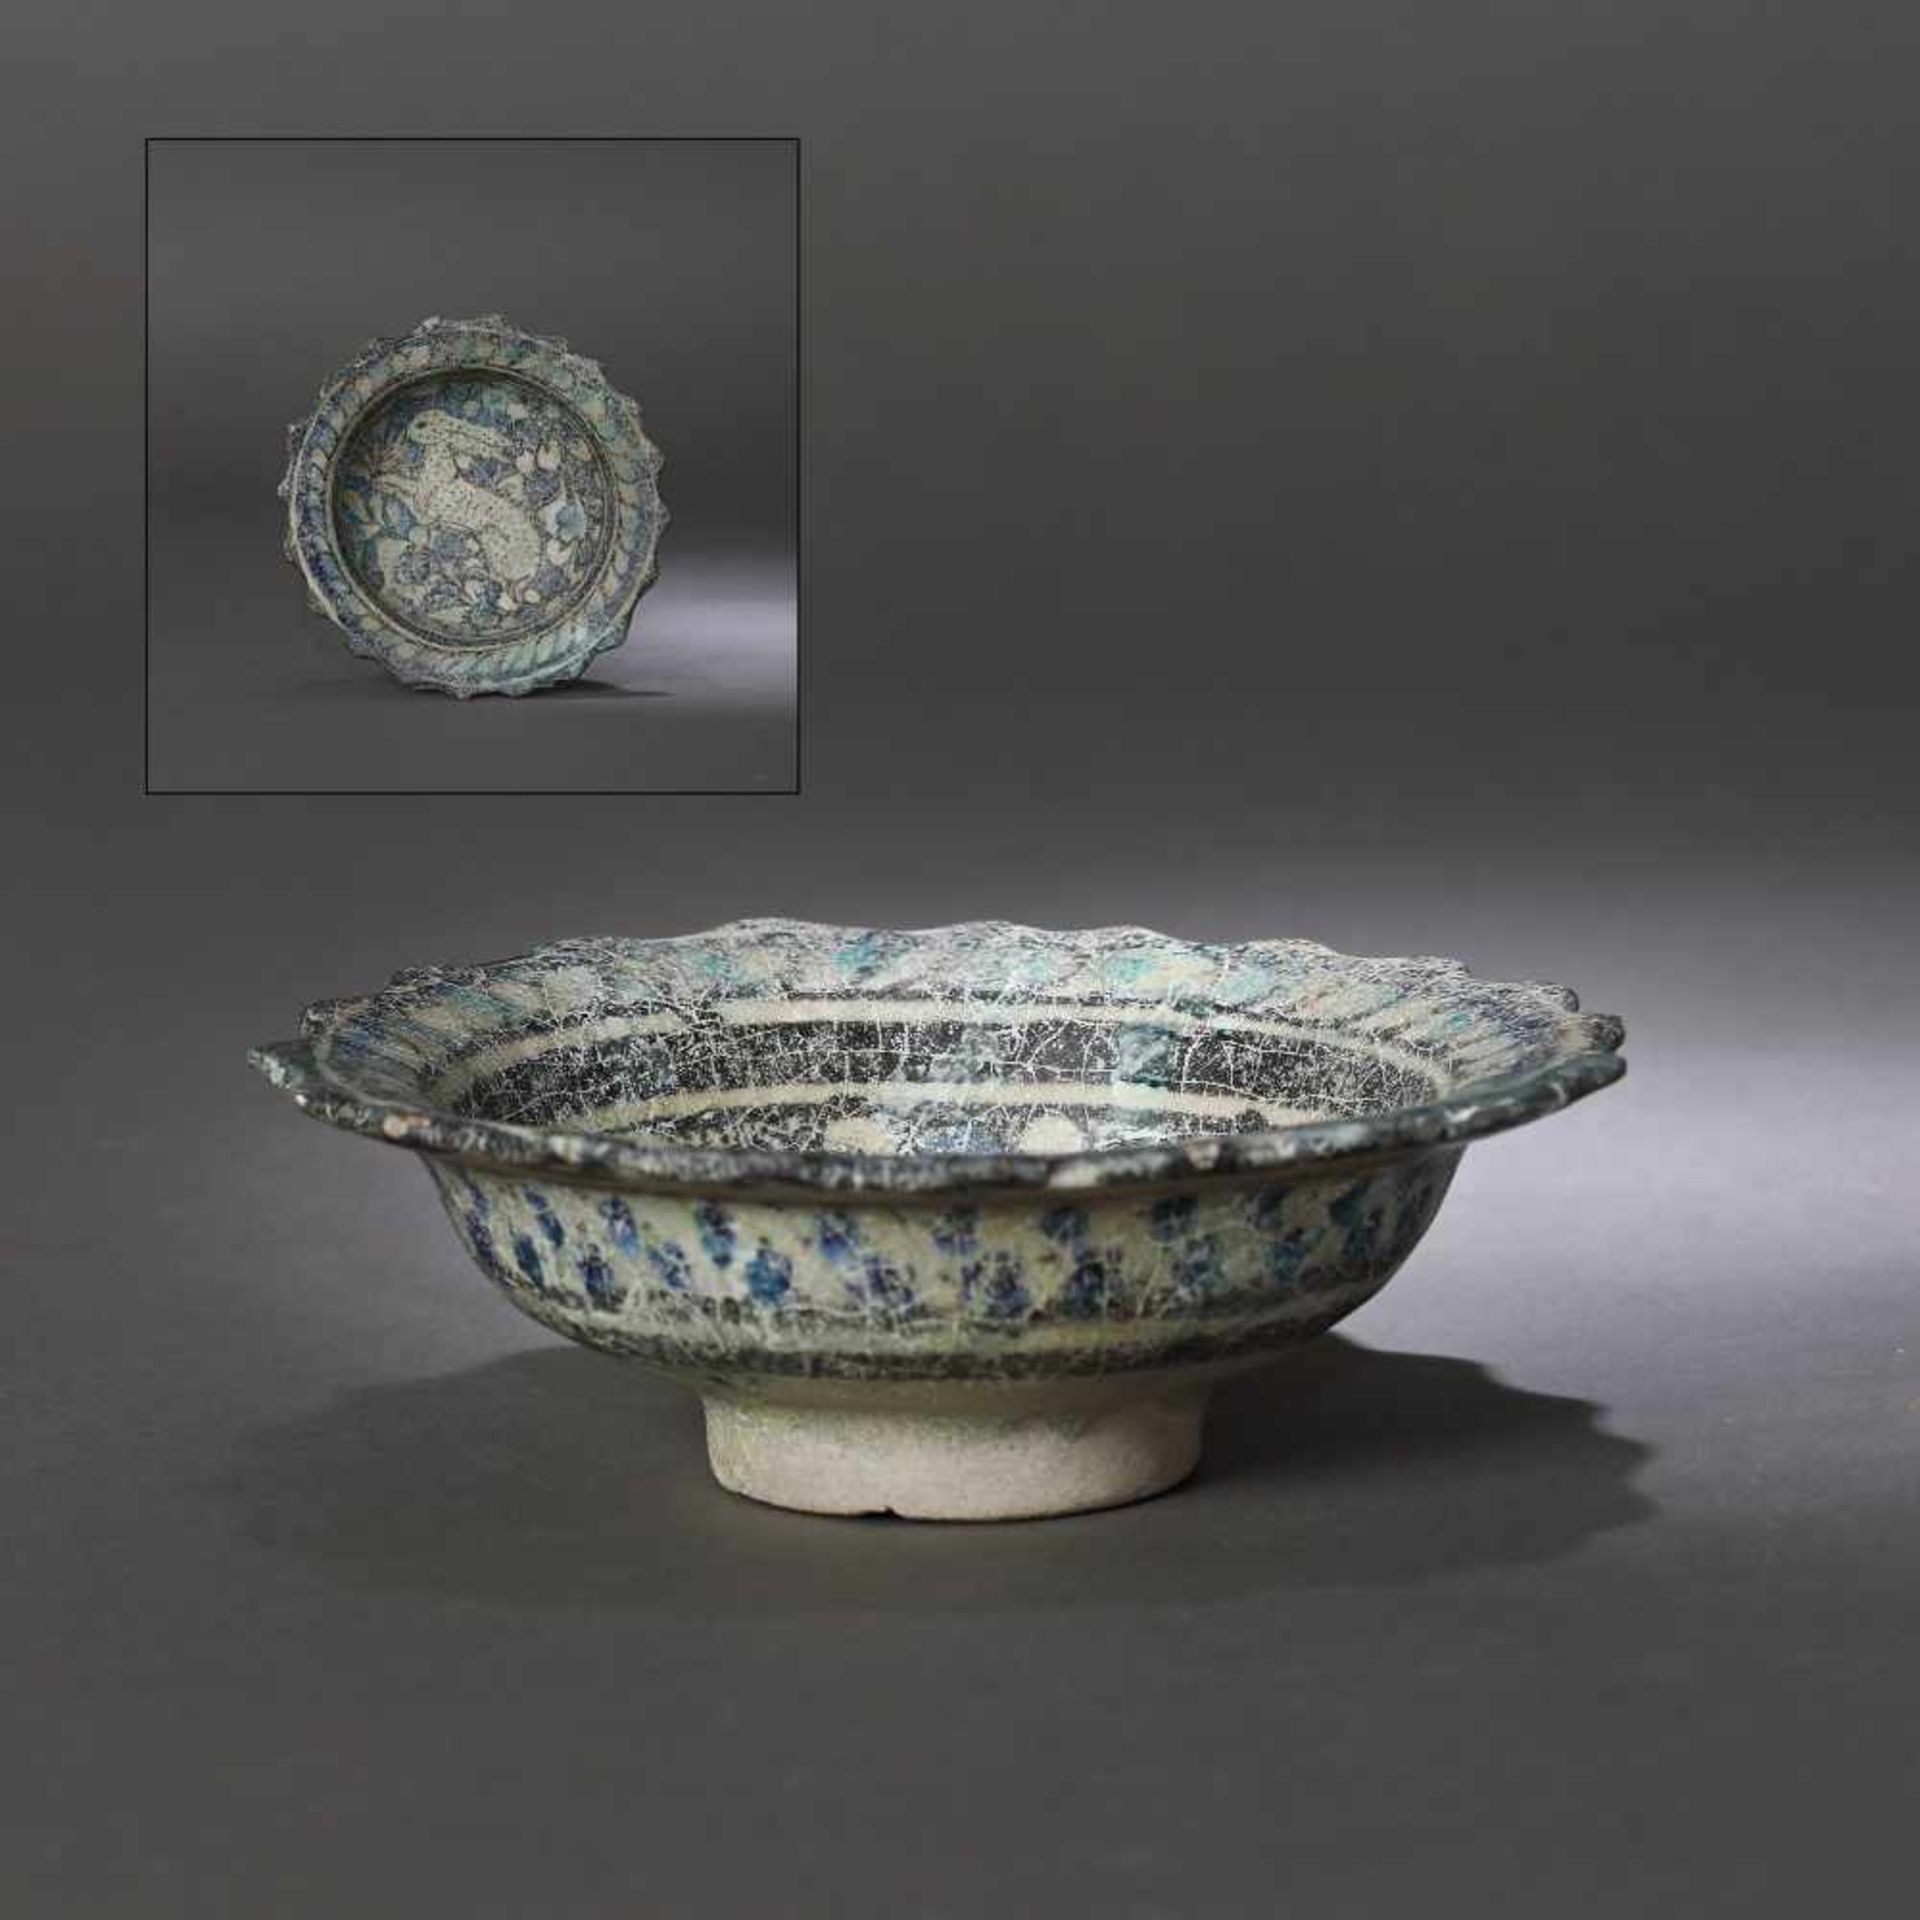 Glazed ceramic Persian bowl, decorated with hunting scene (a rabbit running), approx. 850 years old,